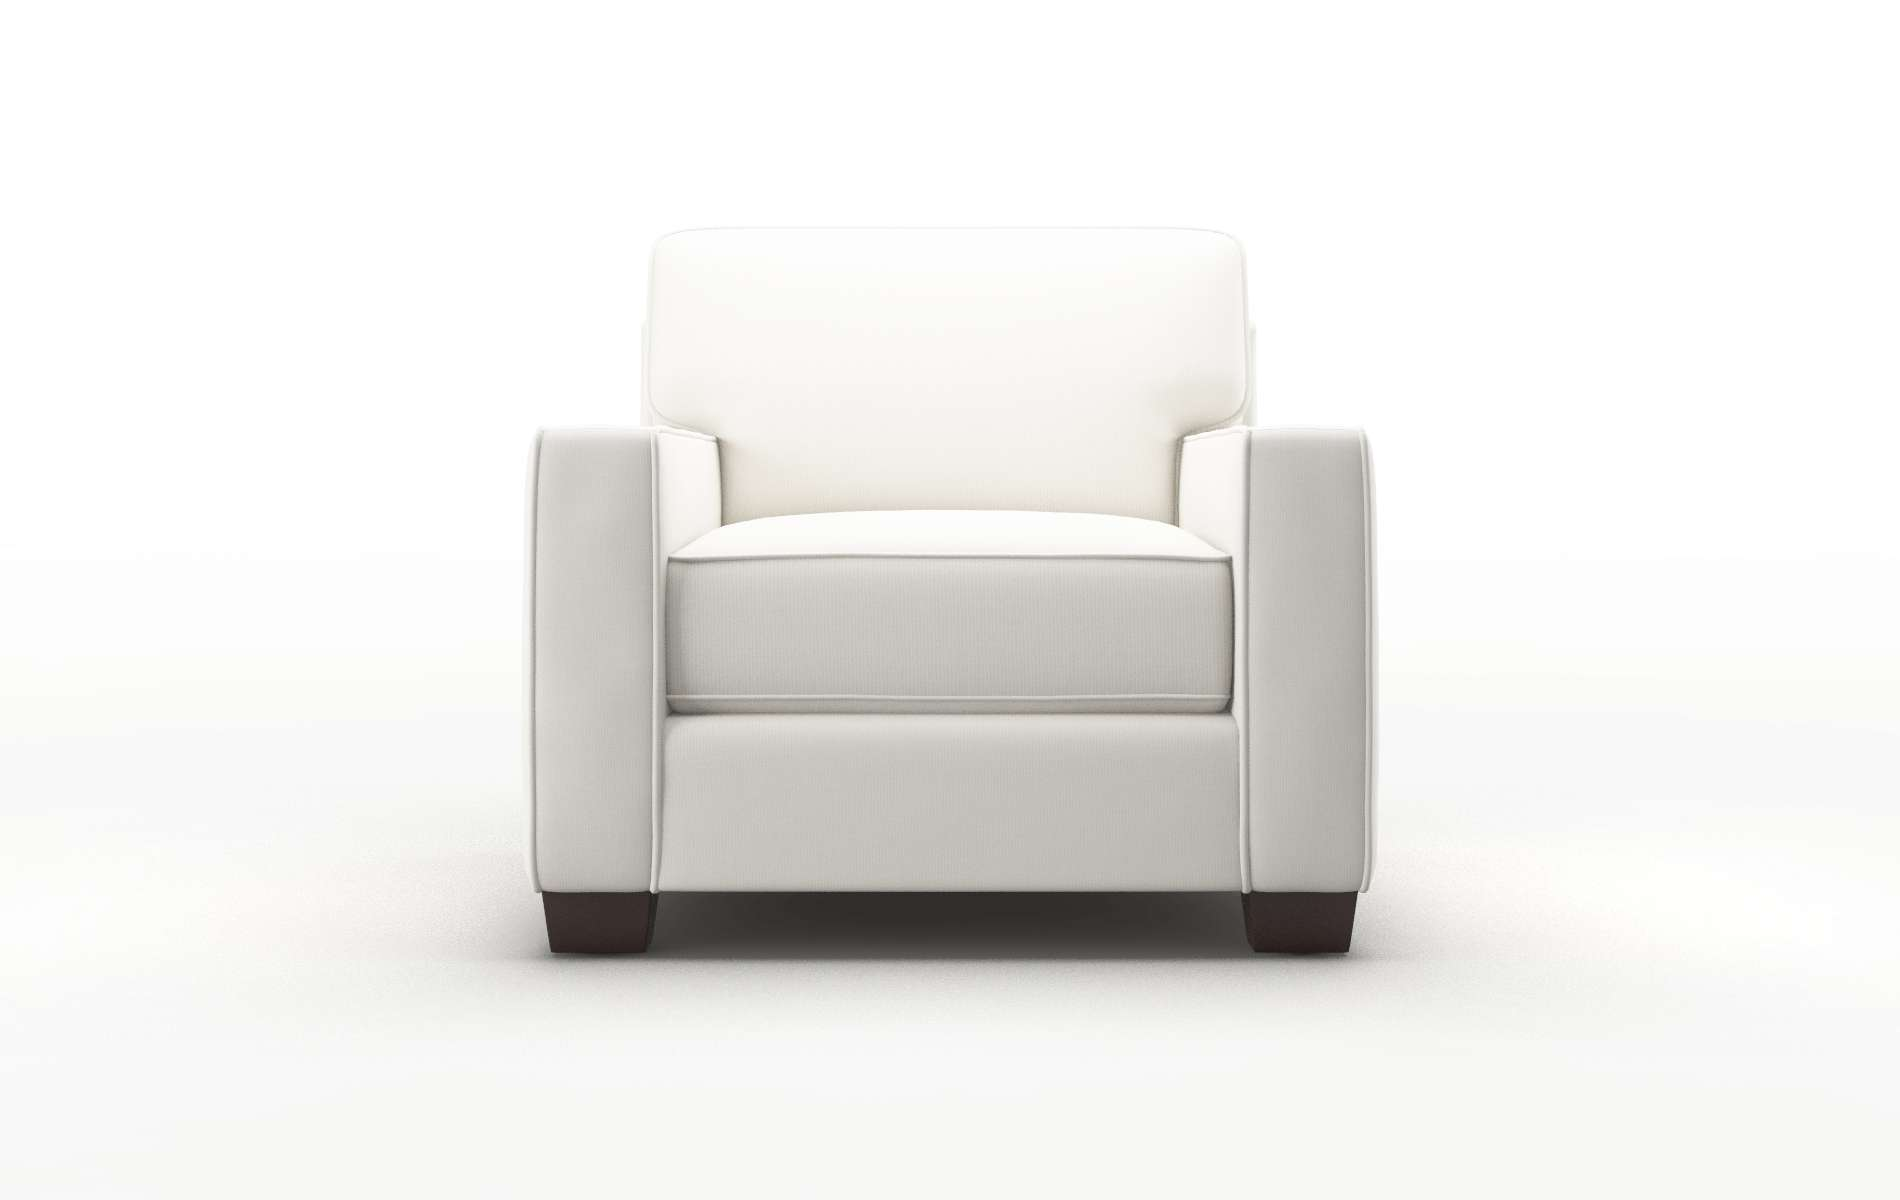 Chicago Keylargo Oatmeal Chair espresso legs 1